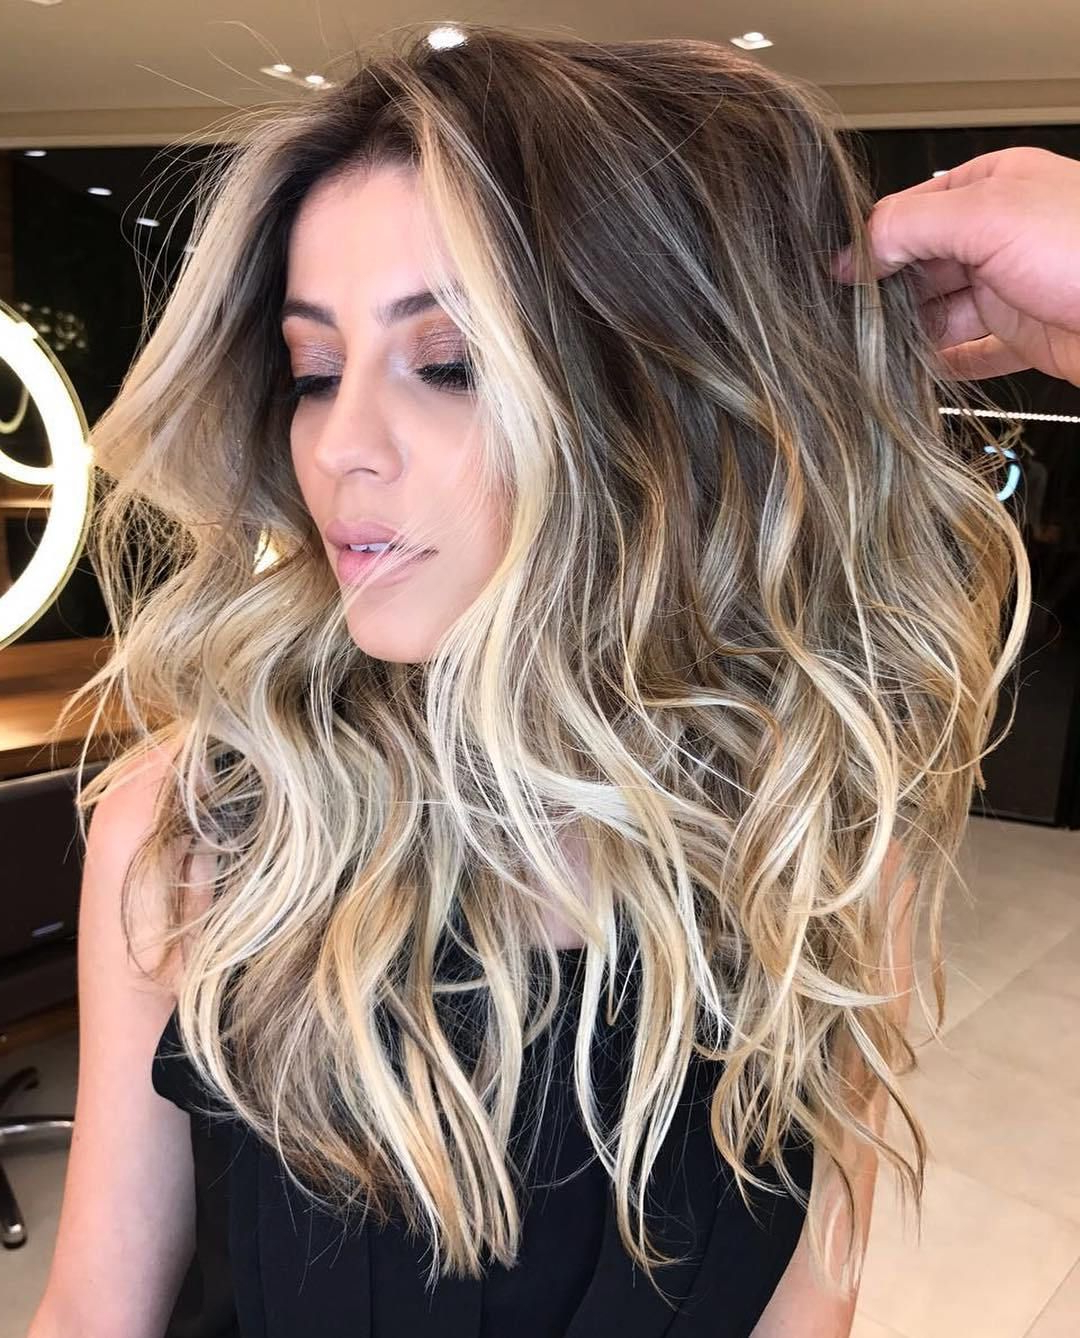 Hair Throughout Well Known Long Dark Hairstyles With Blonde Contour Balayage (View 7 of 20)